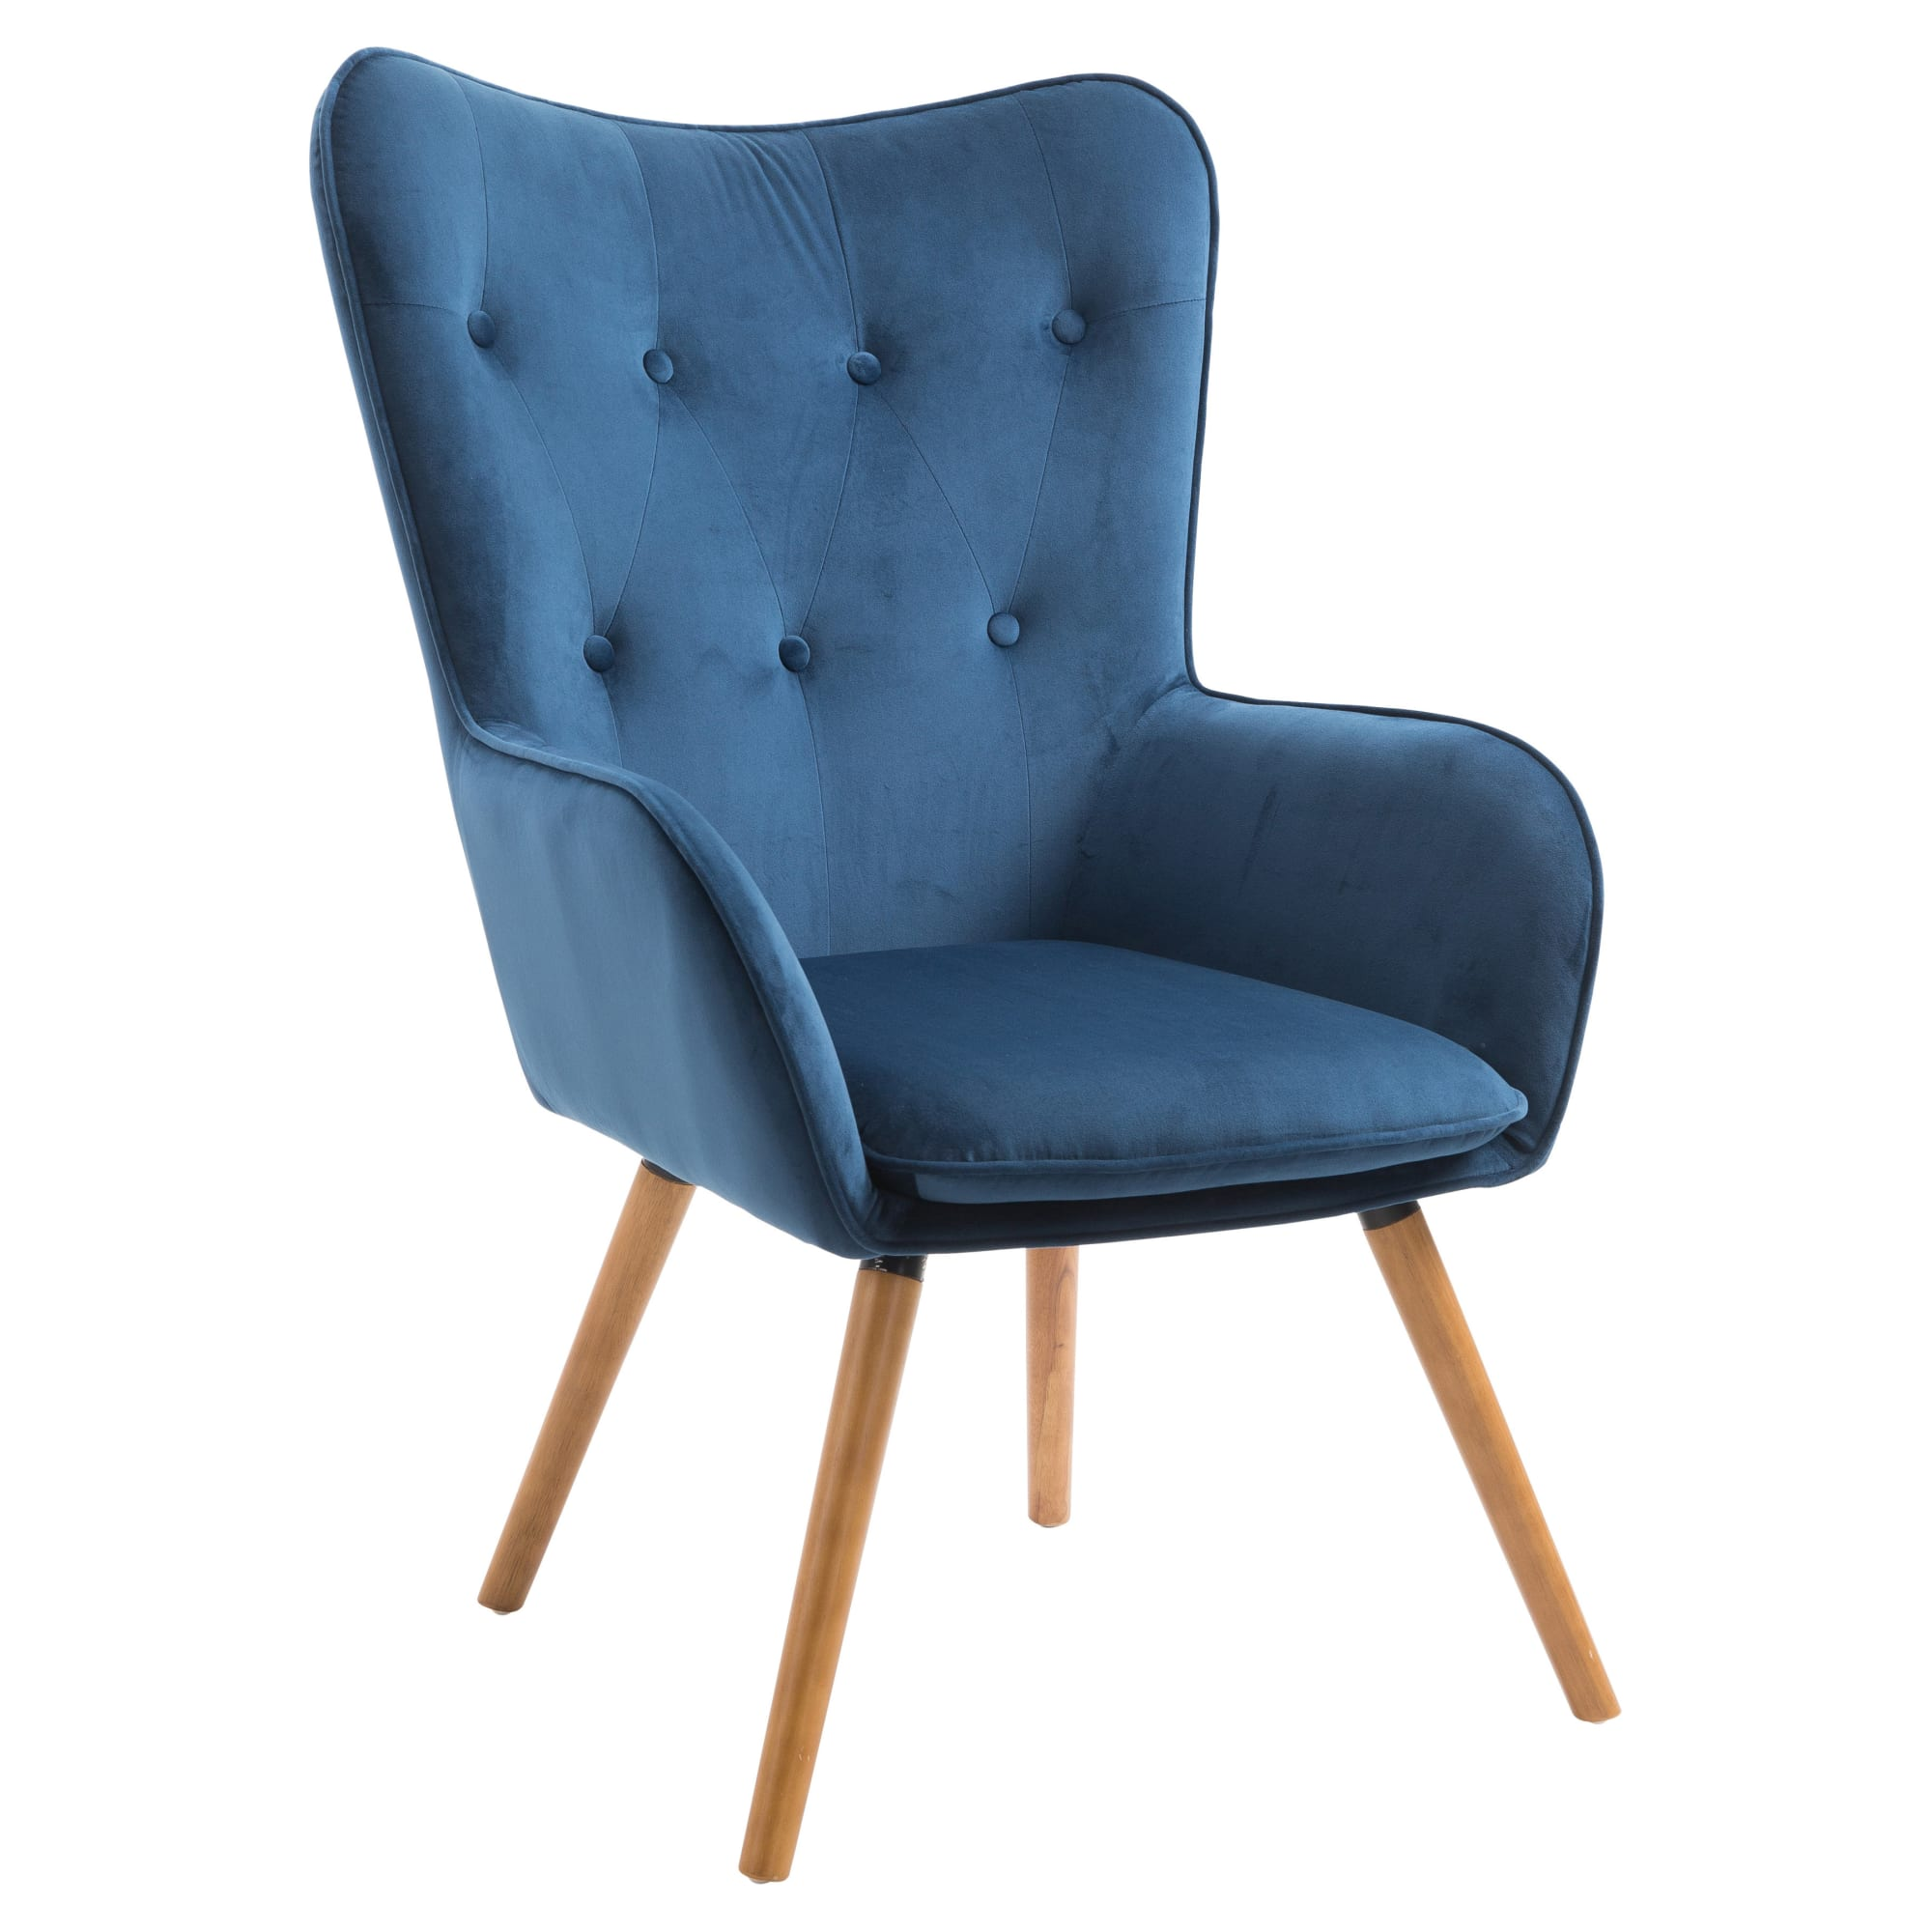 Nico Upholstered Chair